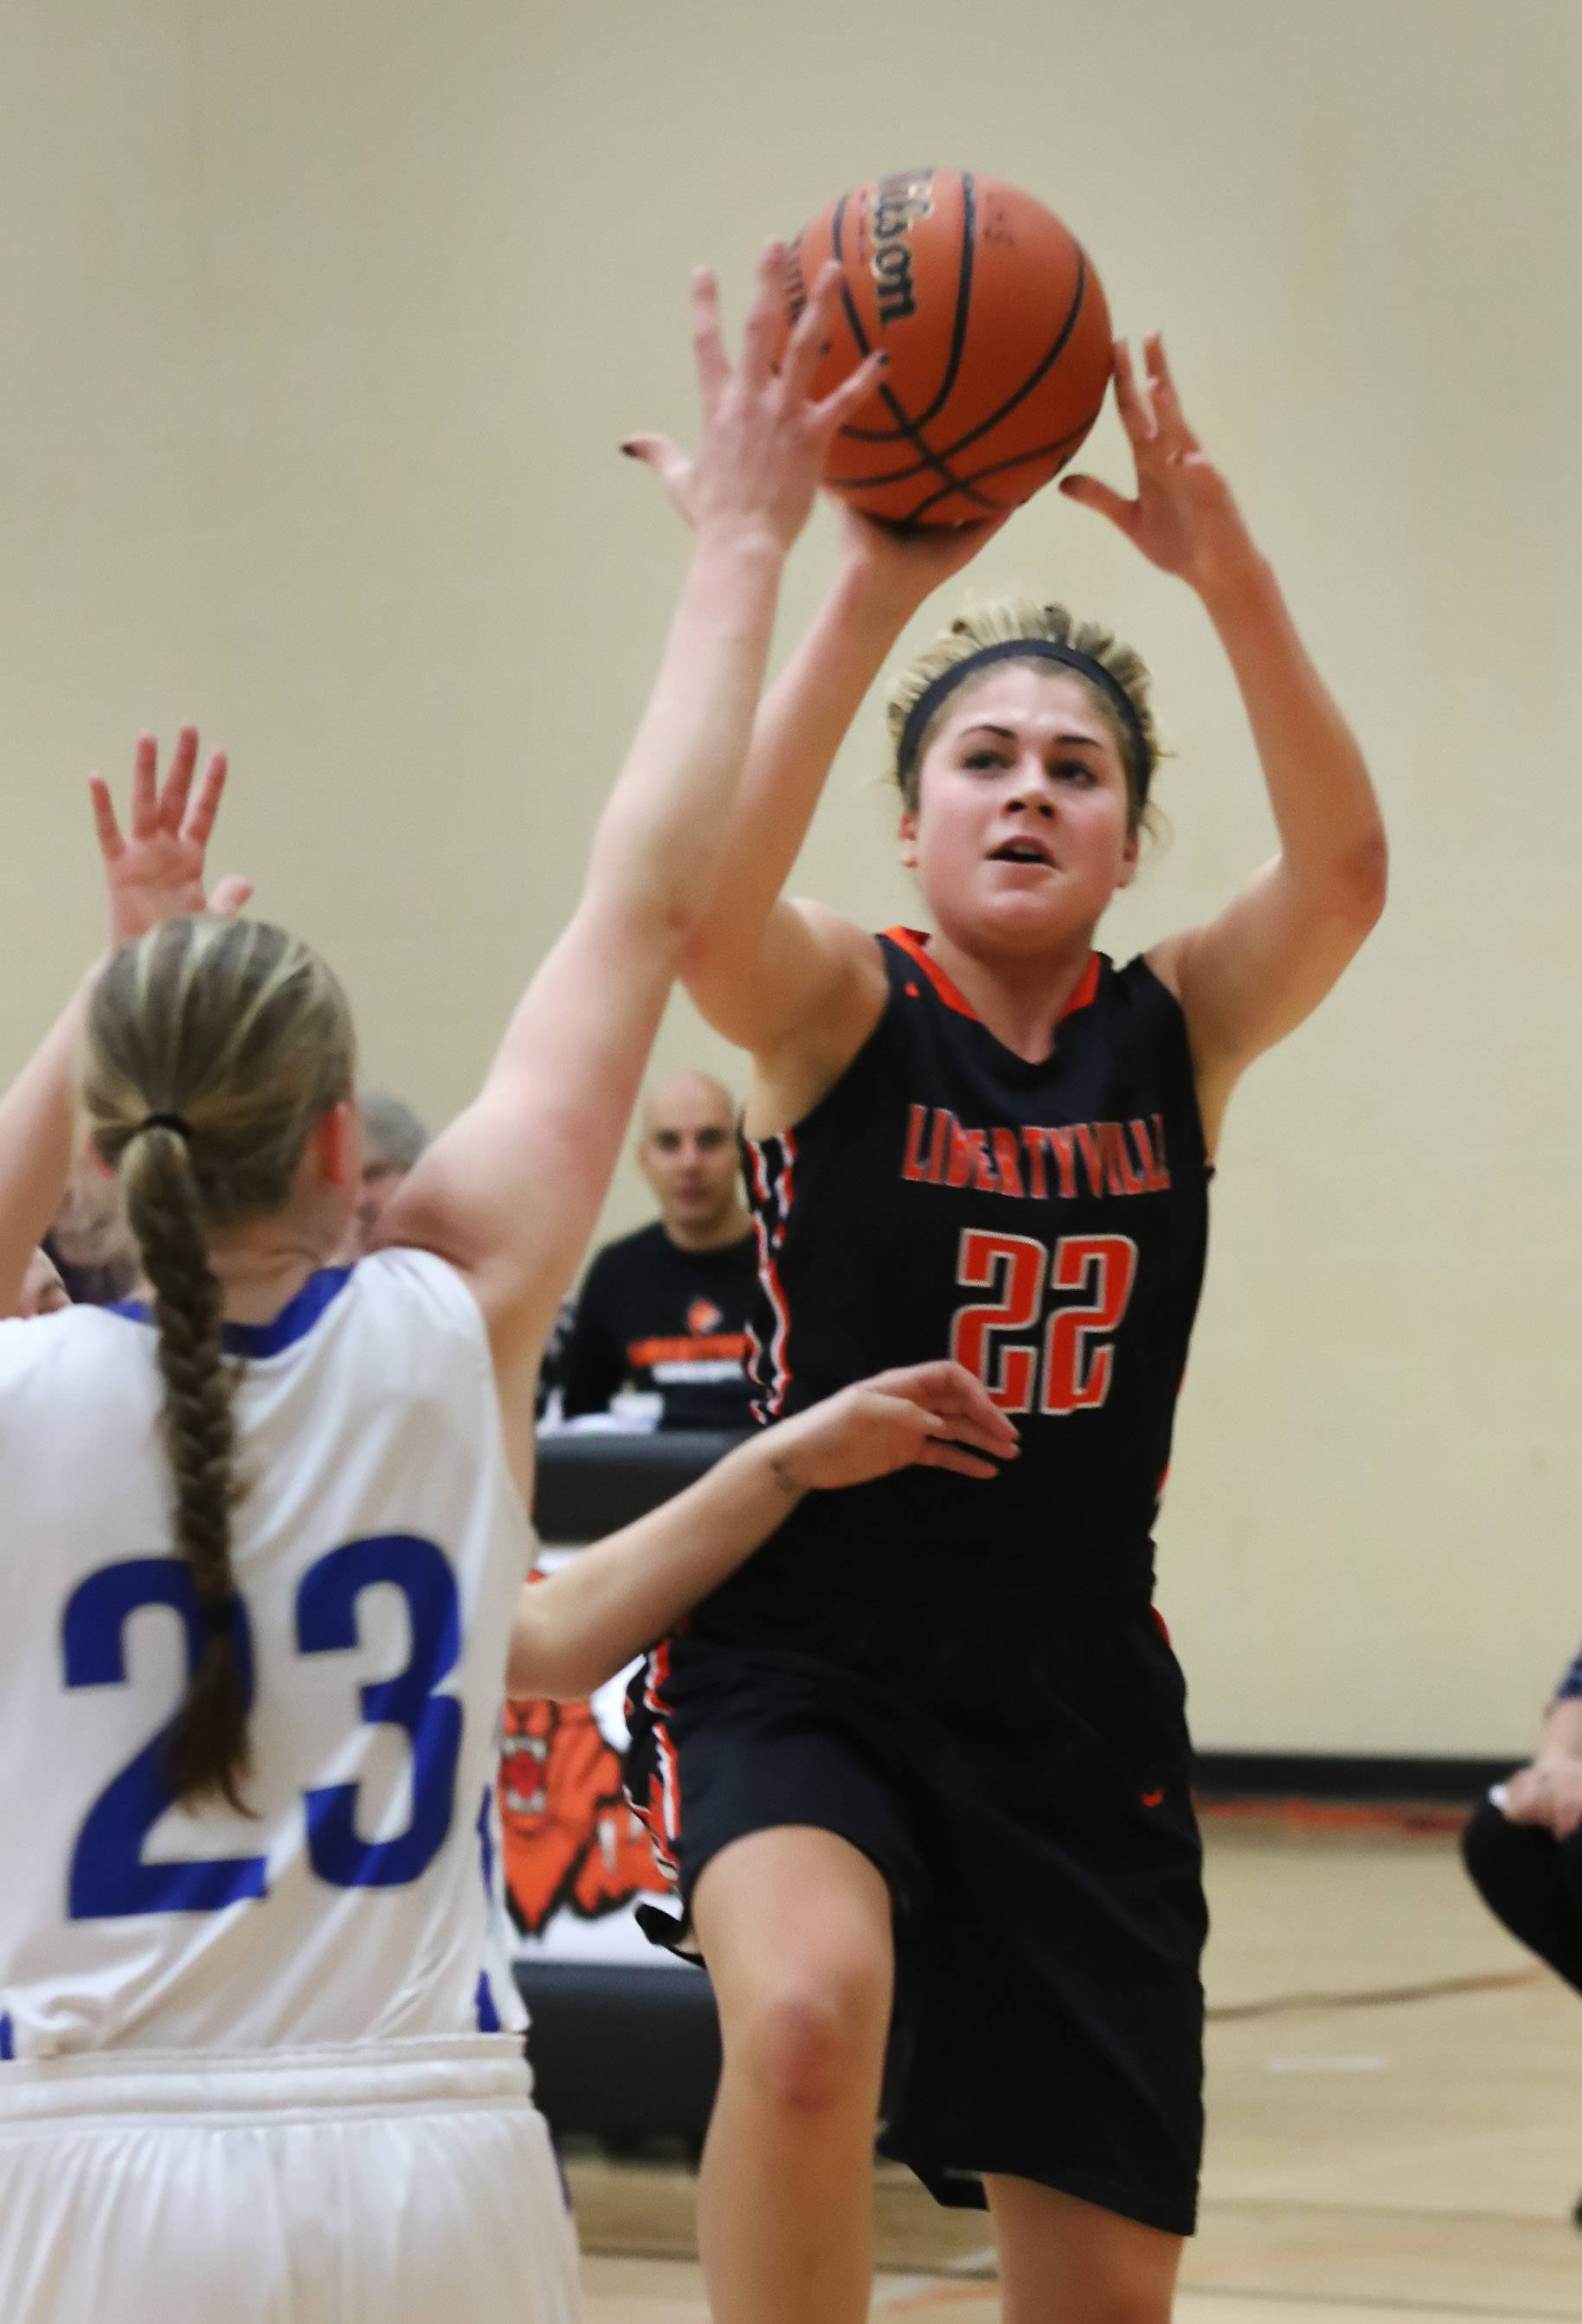 Libertyville guard Riley Weis shoots over Vernon Hills forward Becky Bahlmann during tournament play Thursday at Libertyville.